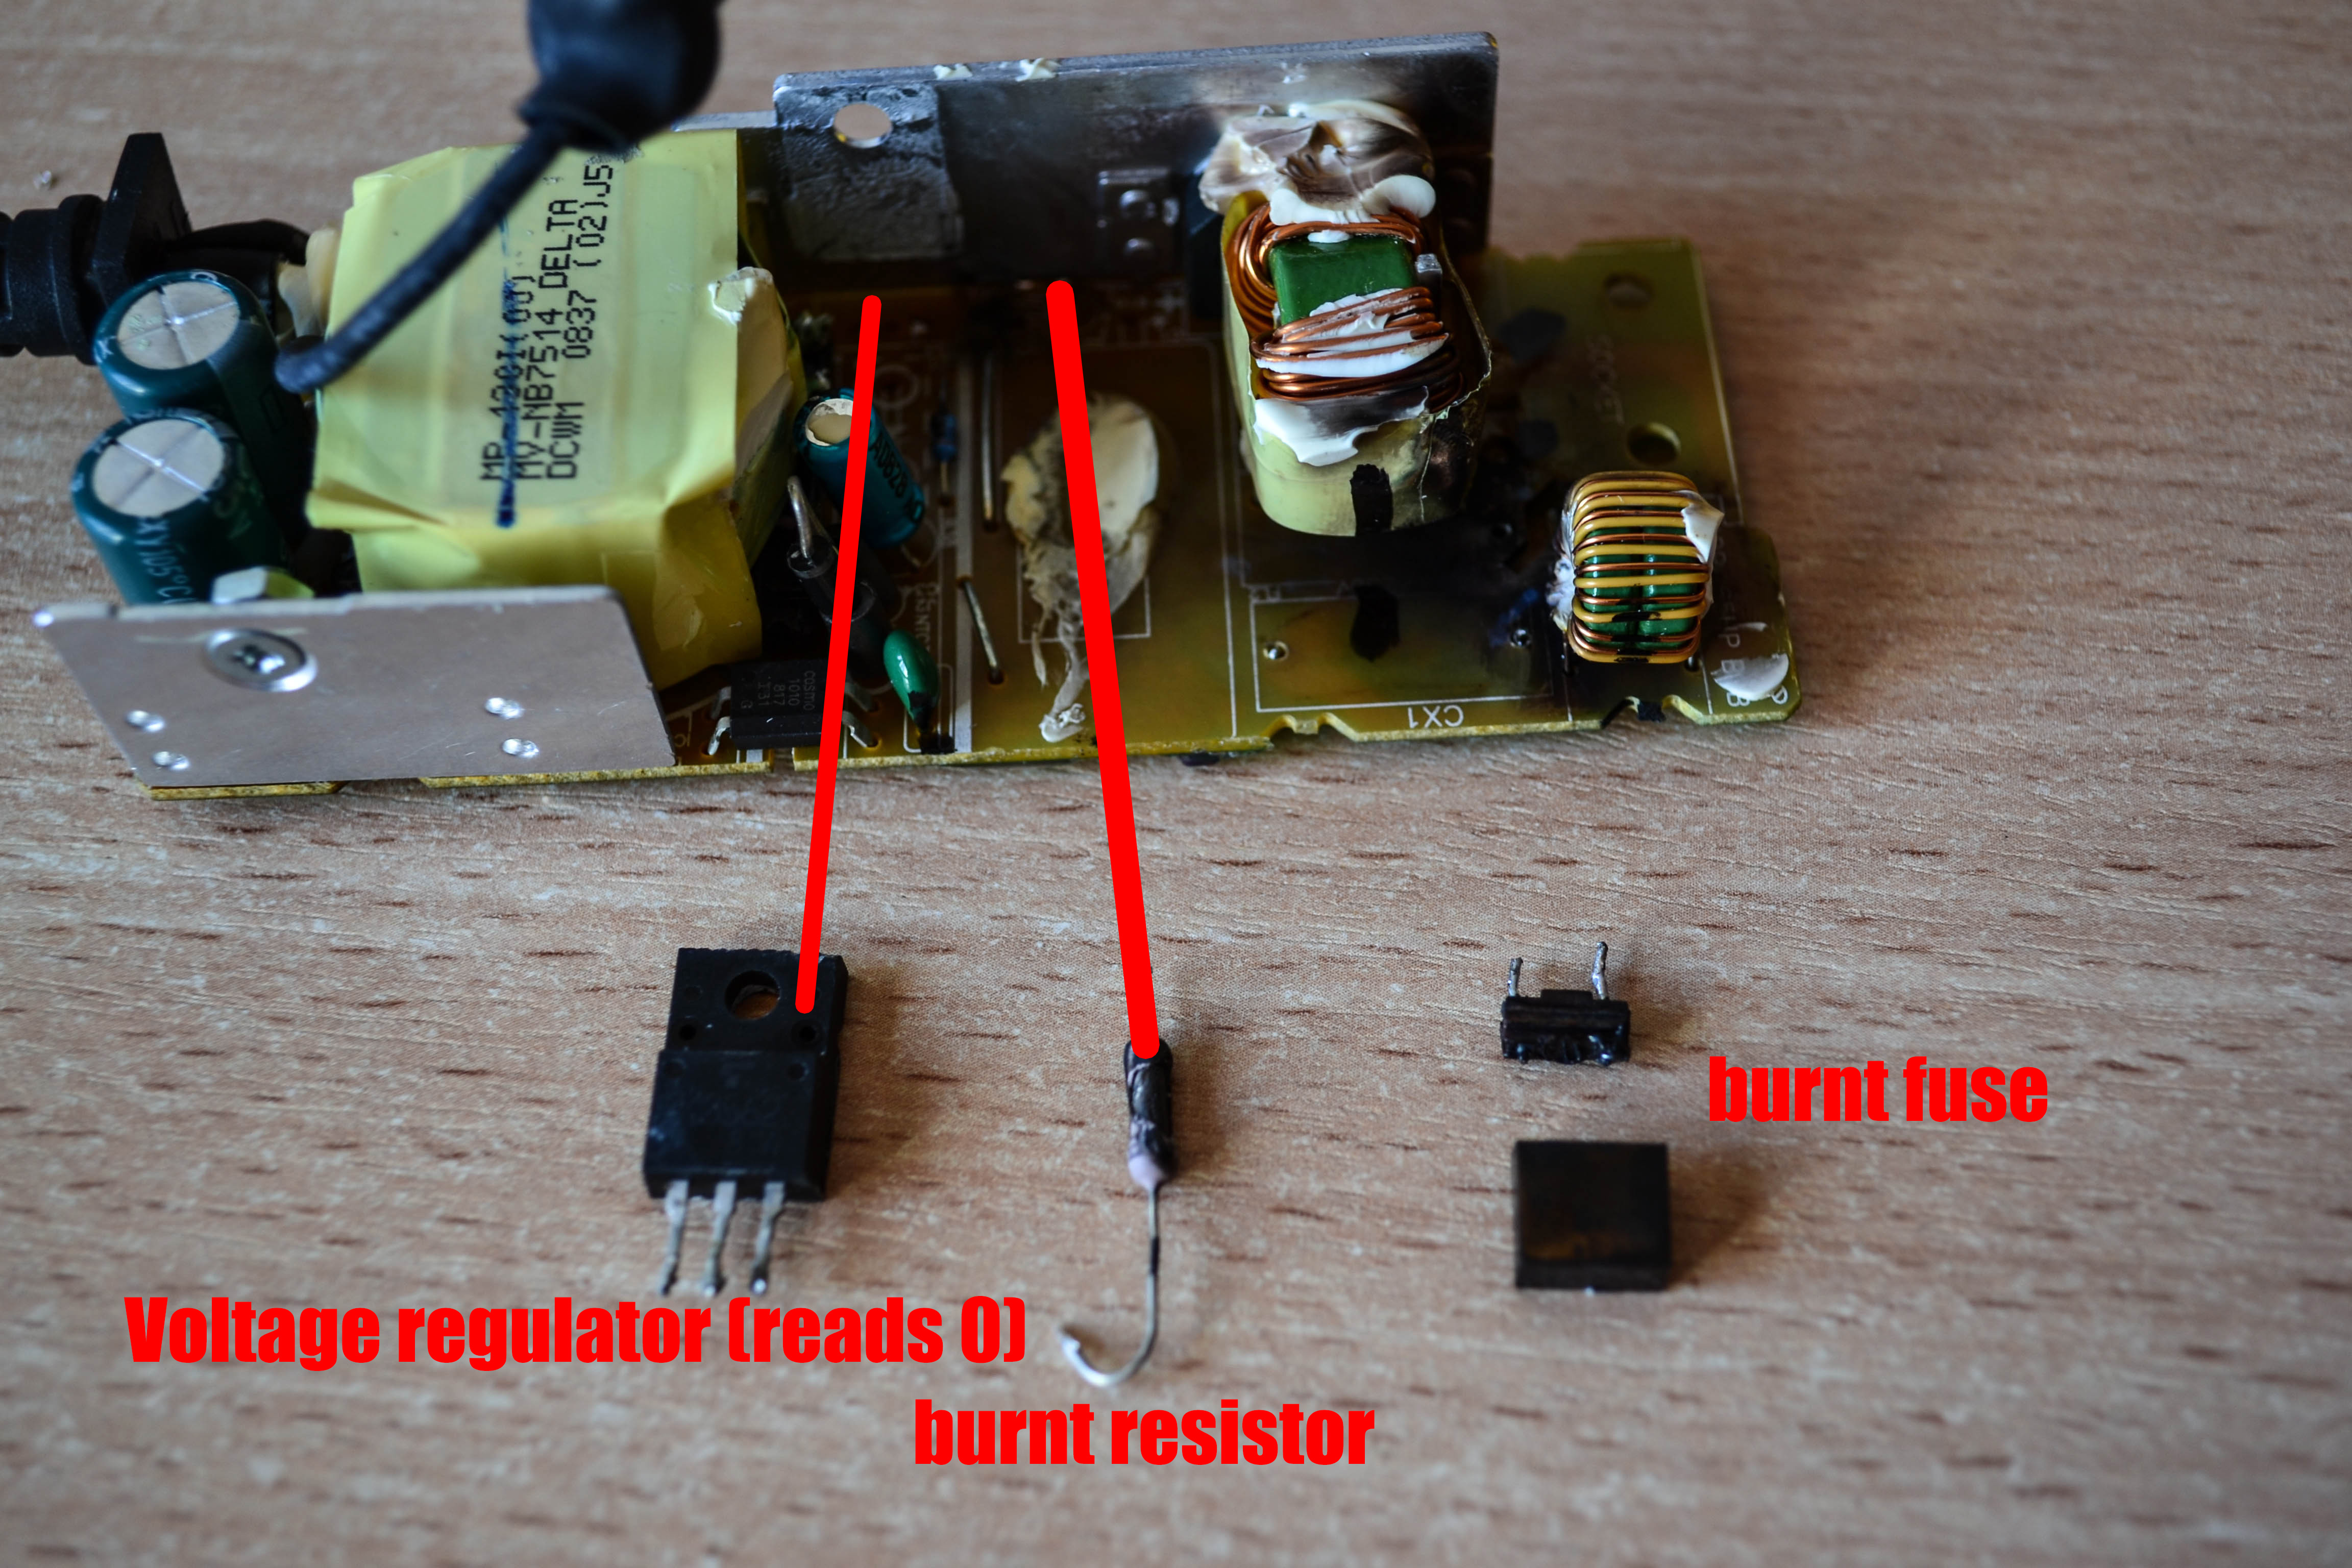 Fuse Blown In Laptop Charger Wiring Diagram Services Burnt Breaker Box Hp Compaq Damaged Resistor Faulty Vregulator And So Rh Badcaps Net Troubleshooting Fuses